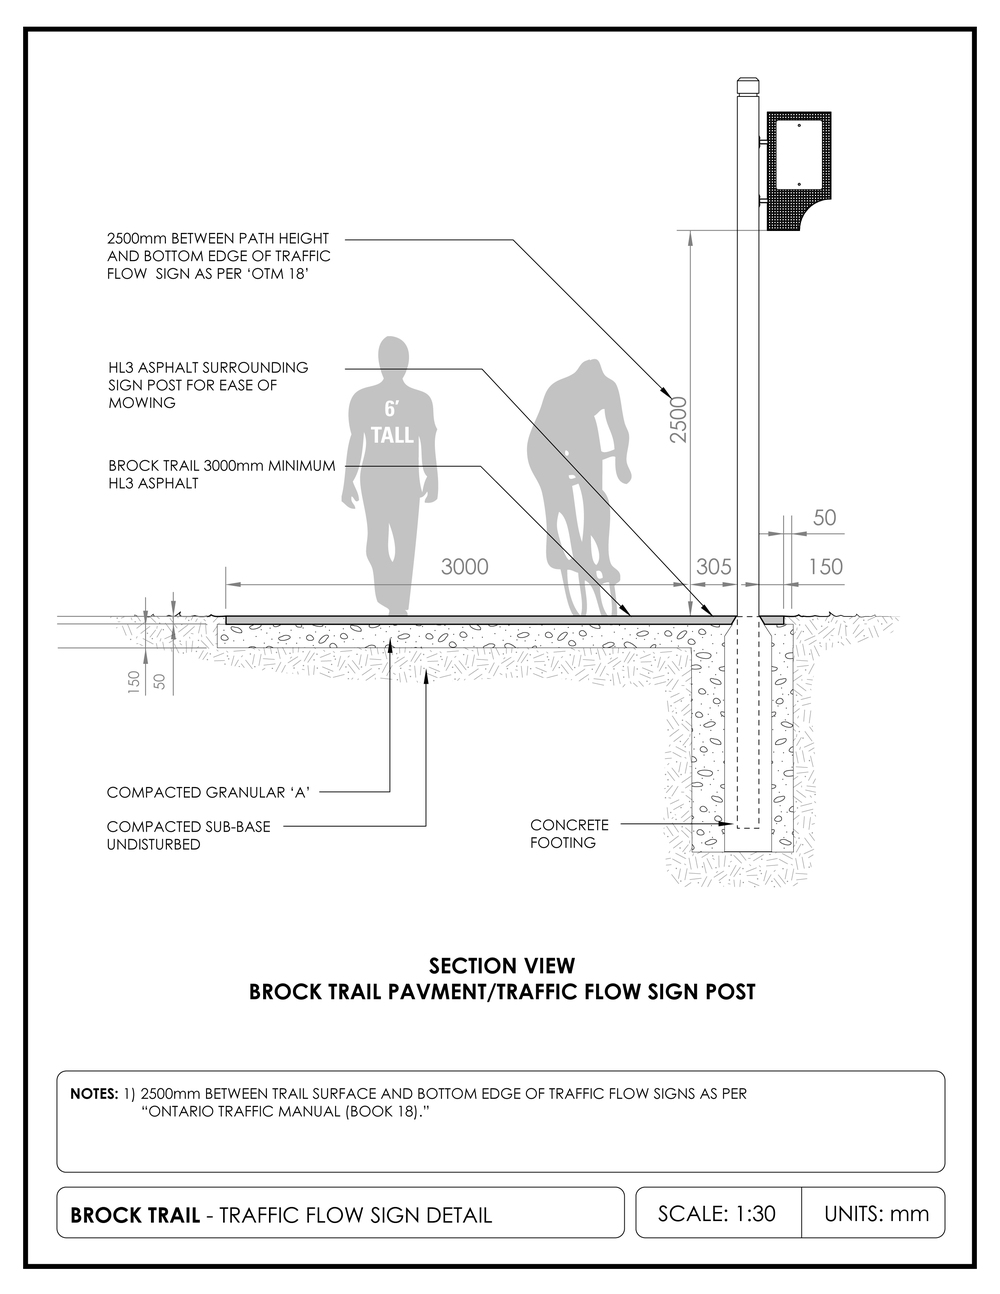 EXAMPLE OF SIGNAGE INSTALLATION DETAIL DRAWING FOR TRAIL EXPANSION